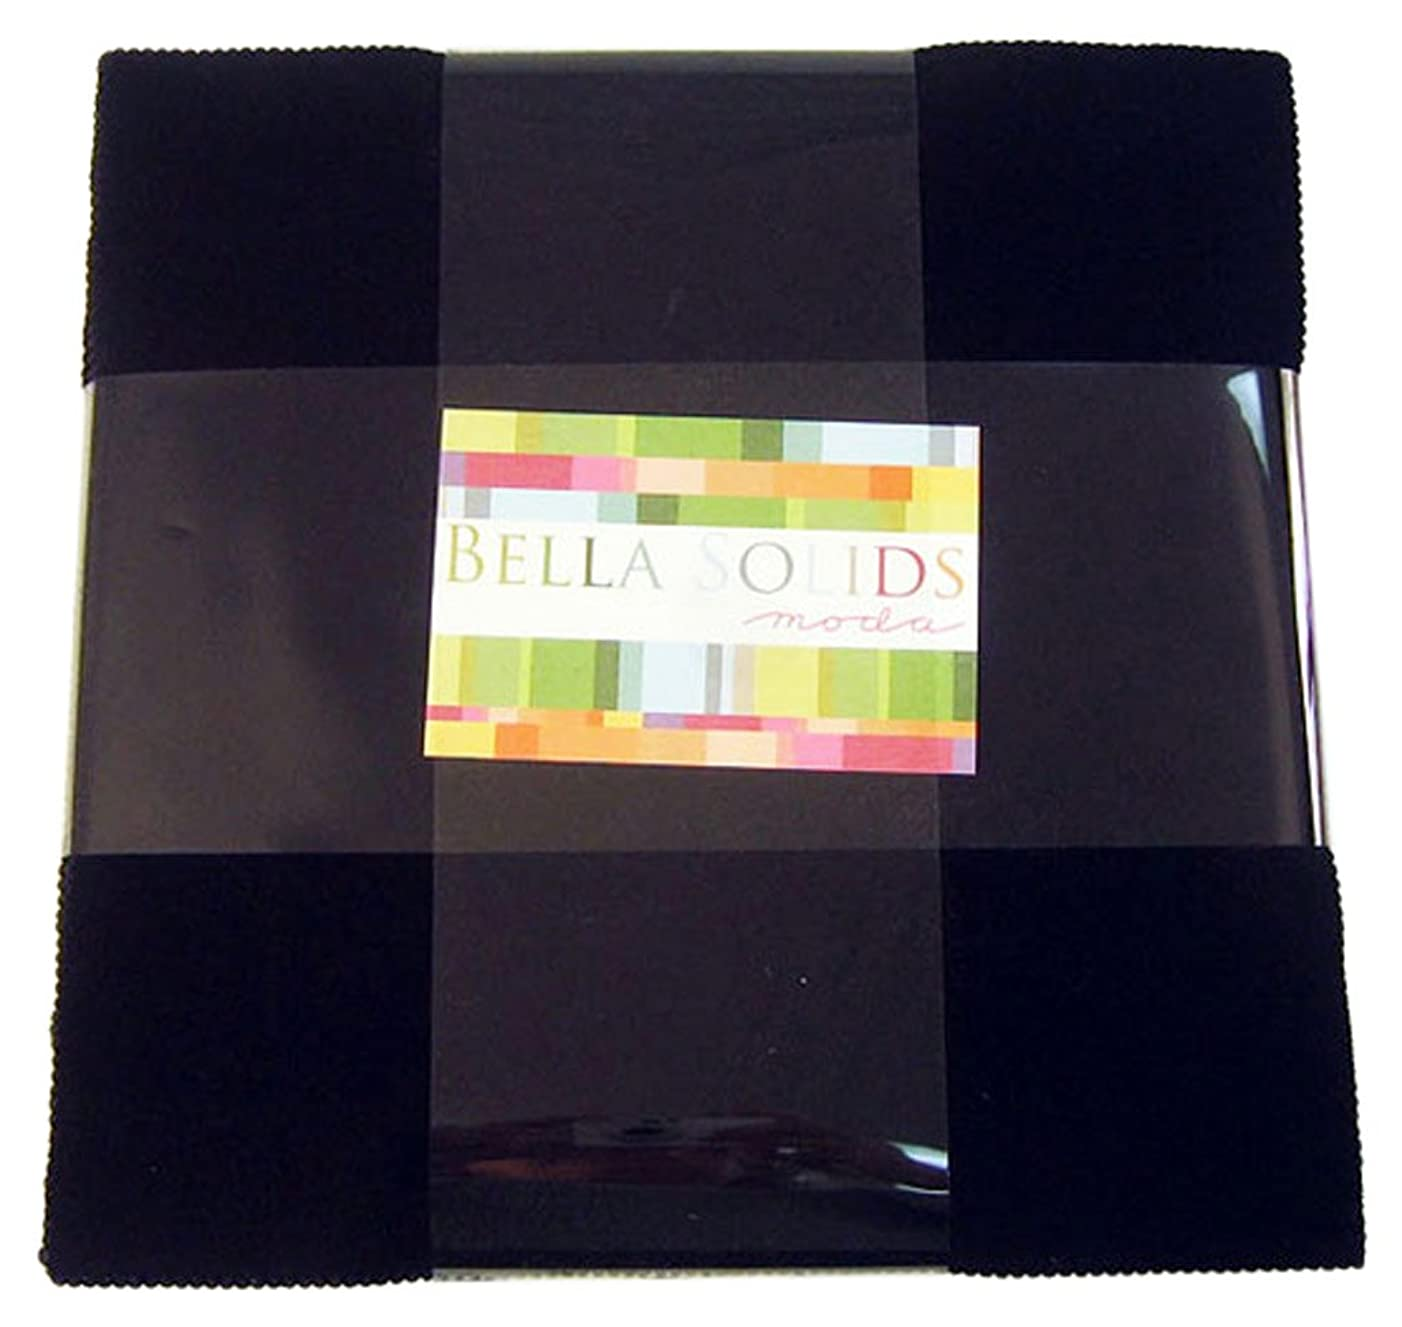 Moda BELLA SOLIDS BLACK Layer Cake 10 Fabric Quilting Squares 9900LC-99 by Moda Fabrics